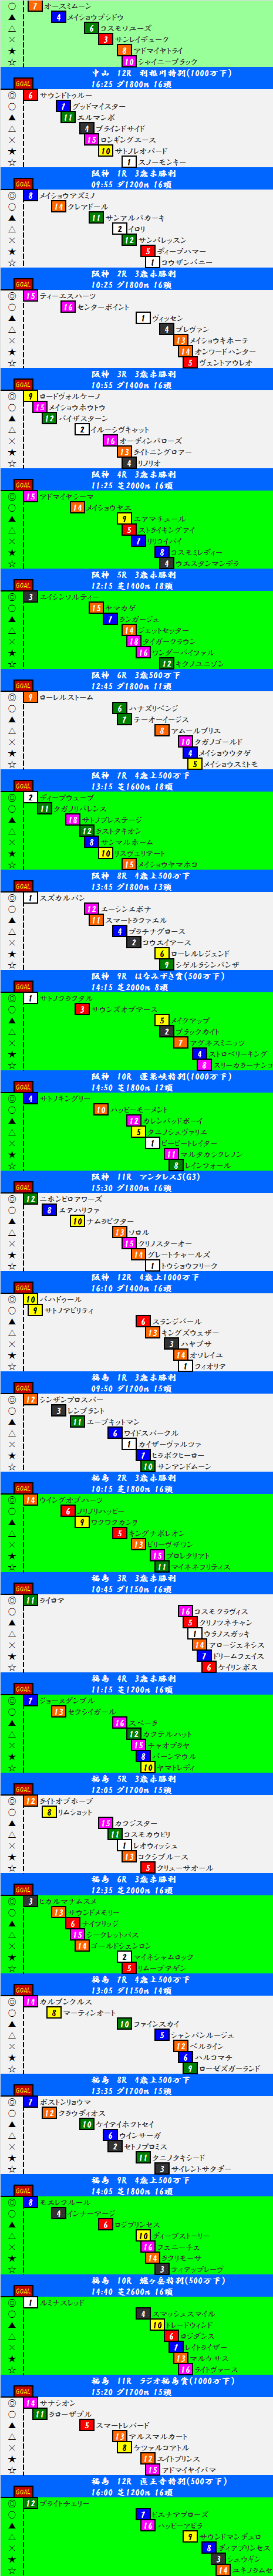 201404192.png